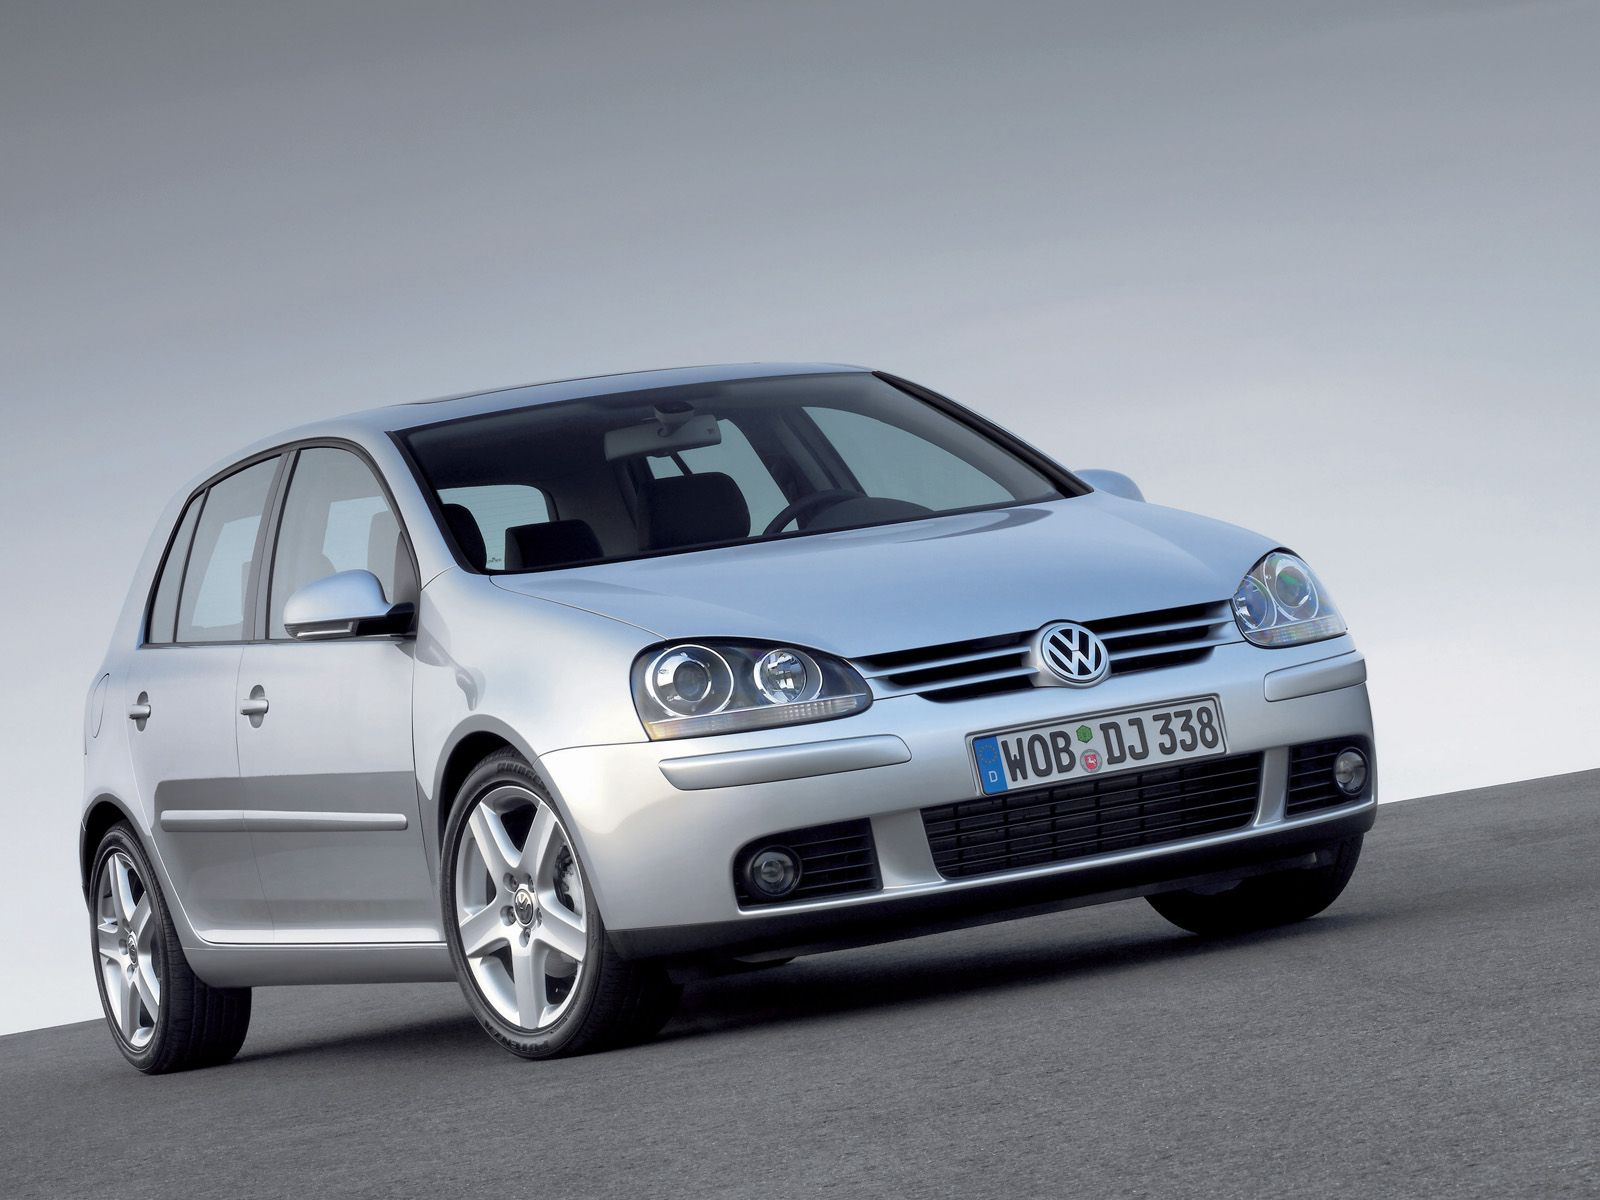 VW Golf 5 image #13